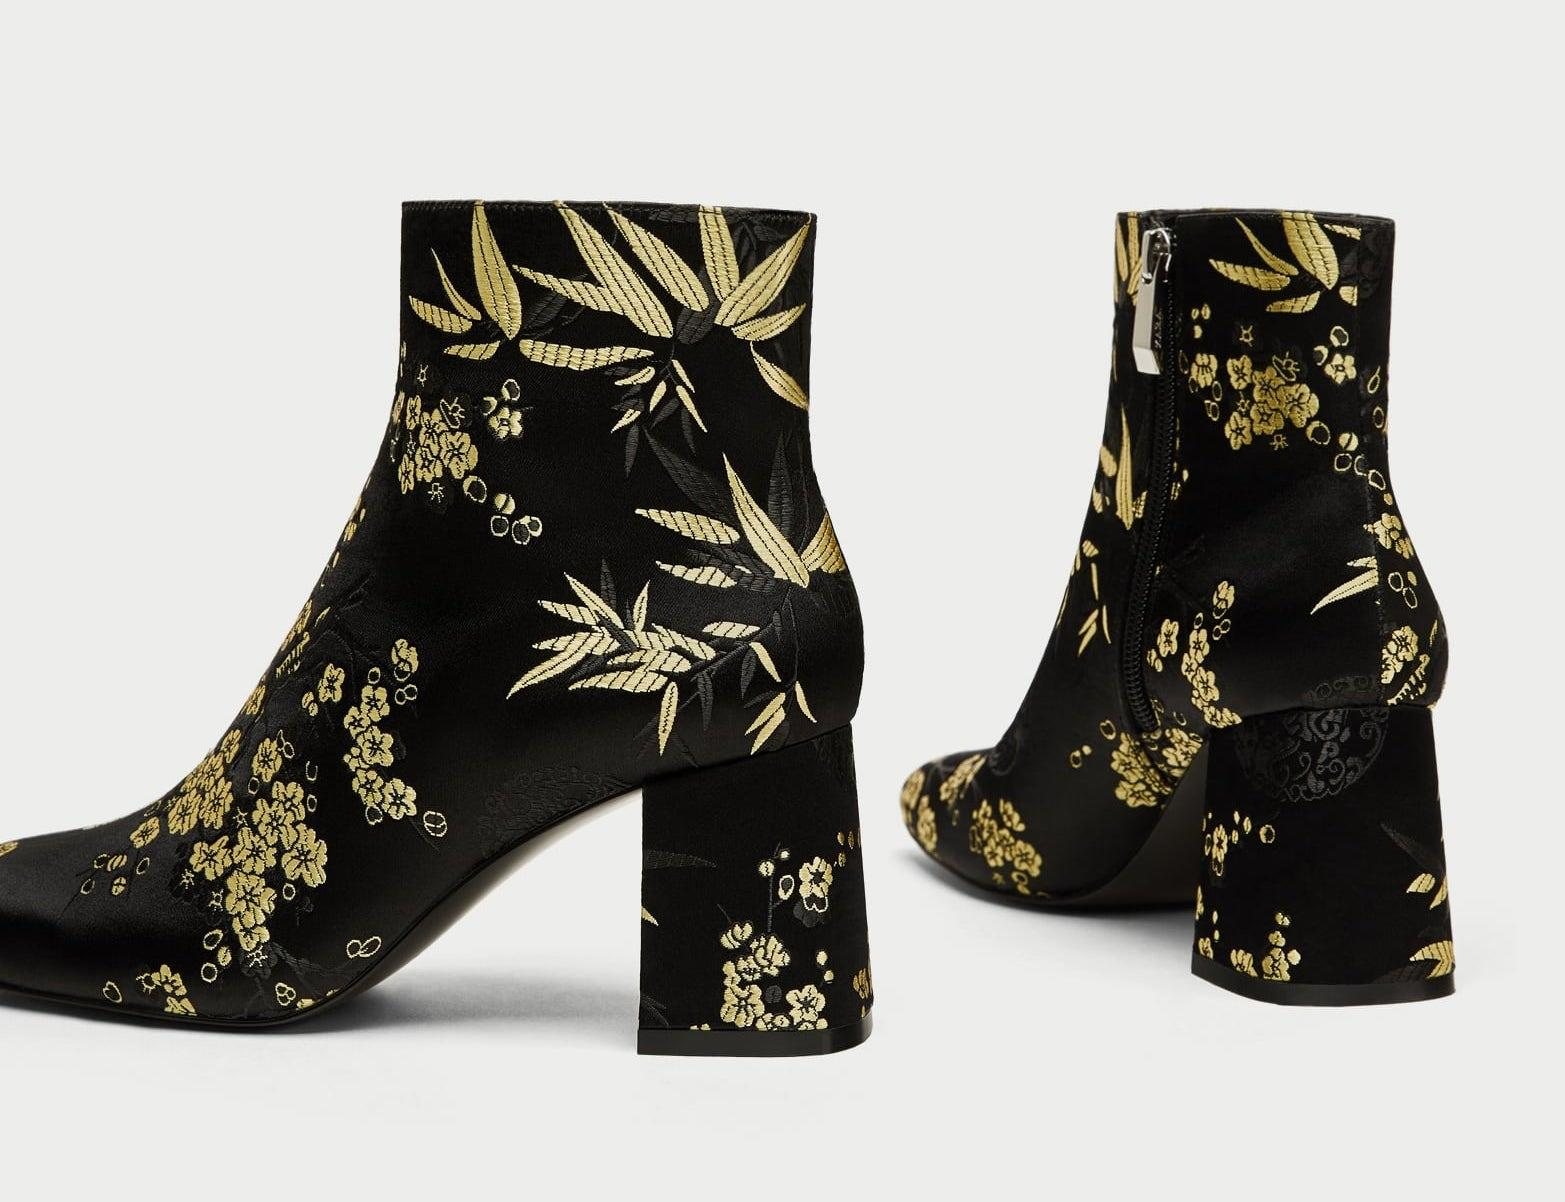 8d15e371884 ... Zara Black Gold Floral Heeled Ankle Boots Booties Size Size Size US 6.5  Regular ...